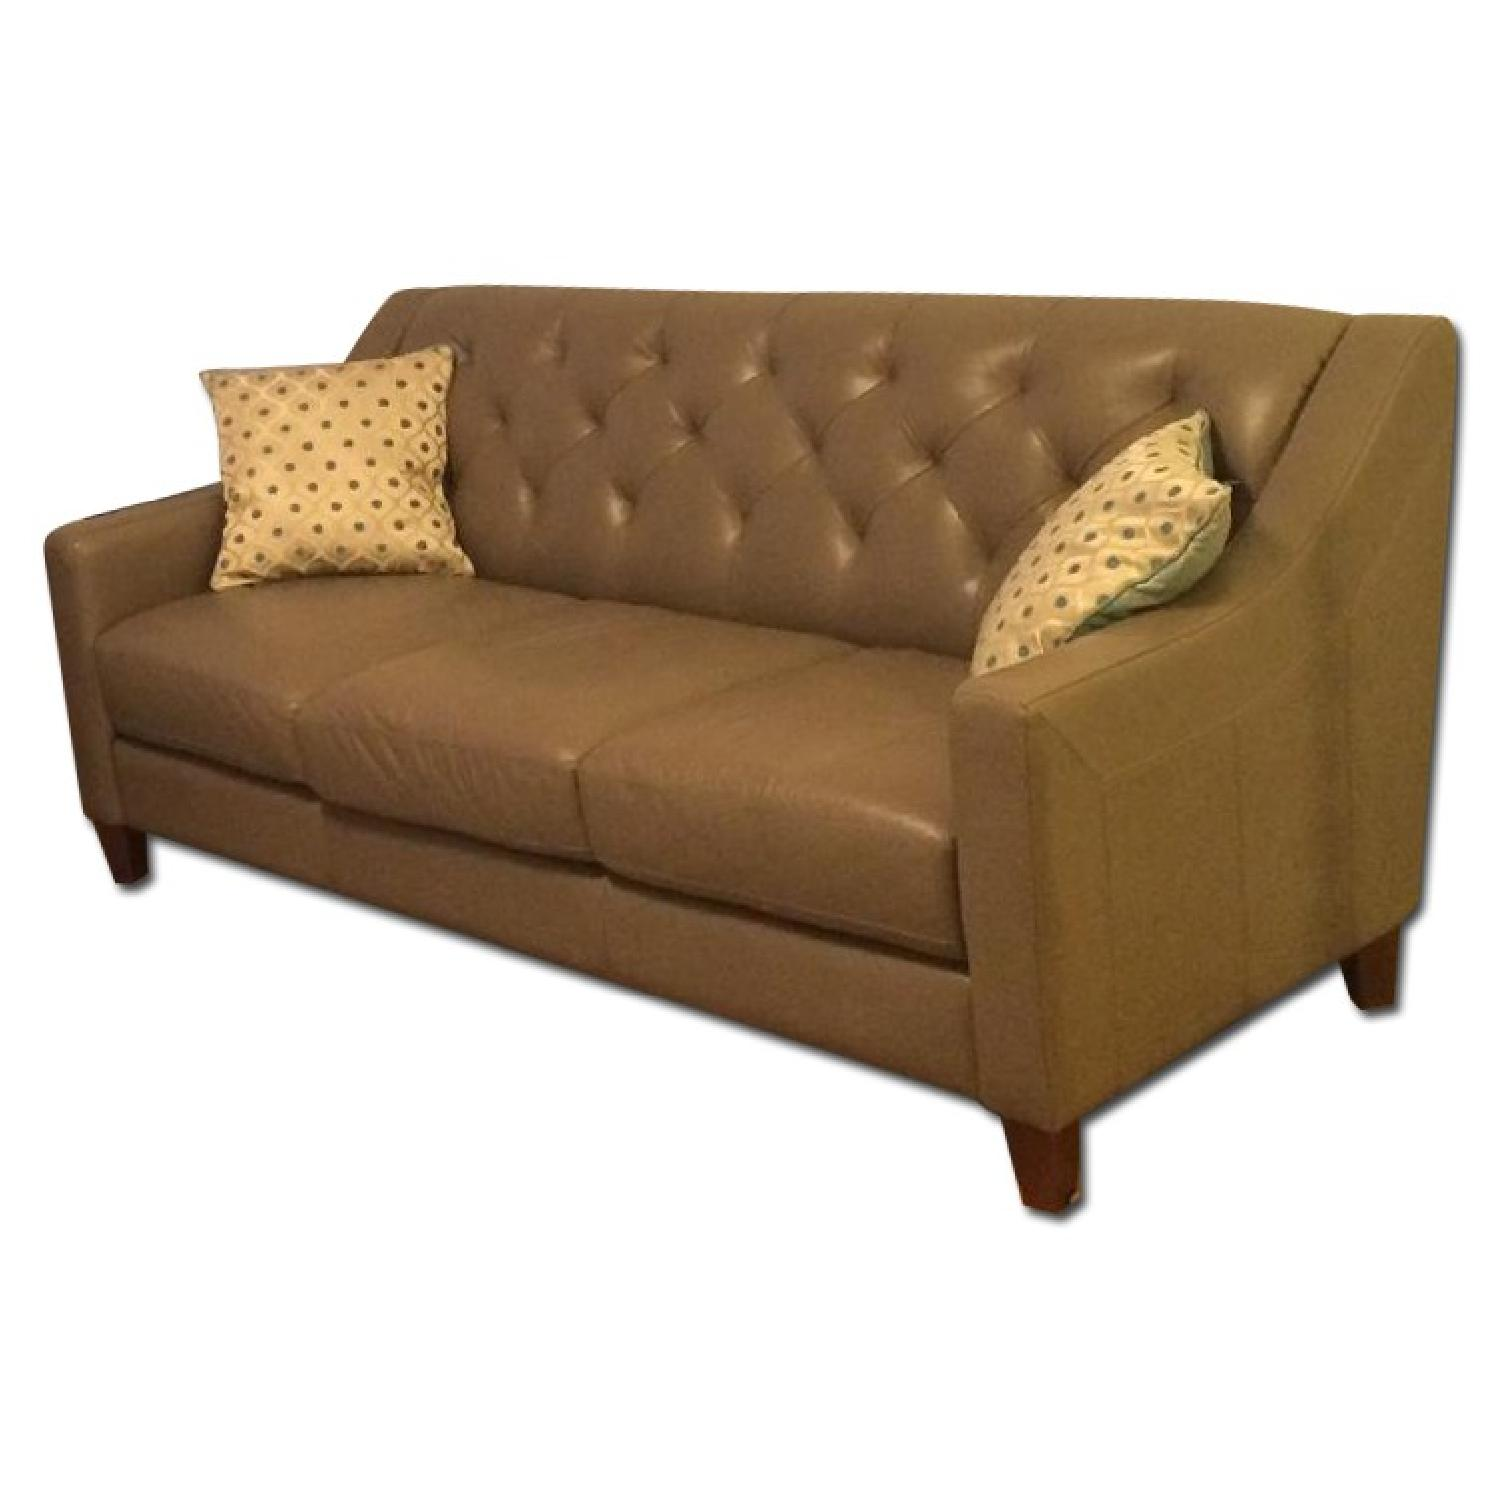 Neutral Gray Tone Leather Couch + Matching Love Seat - image-0